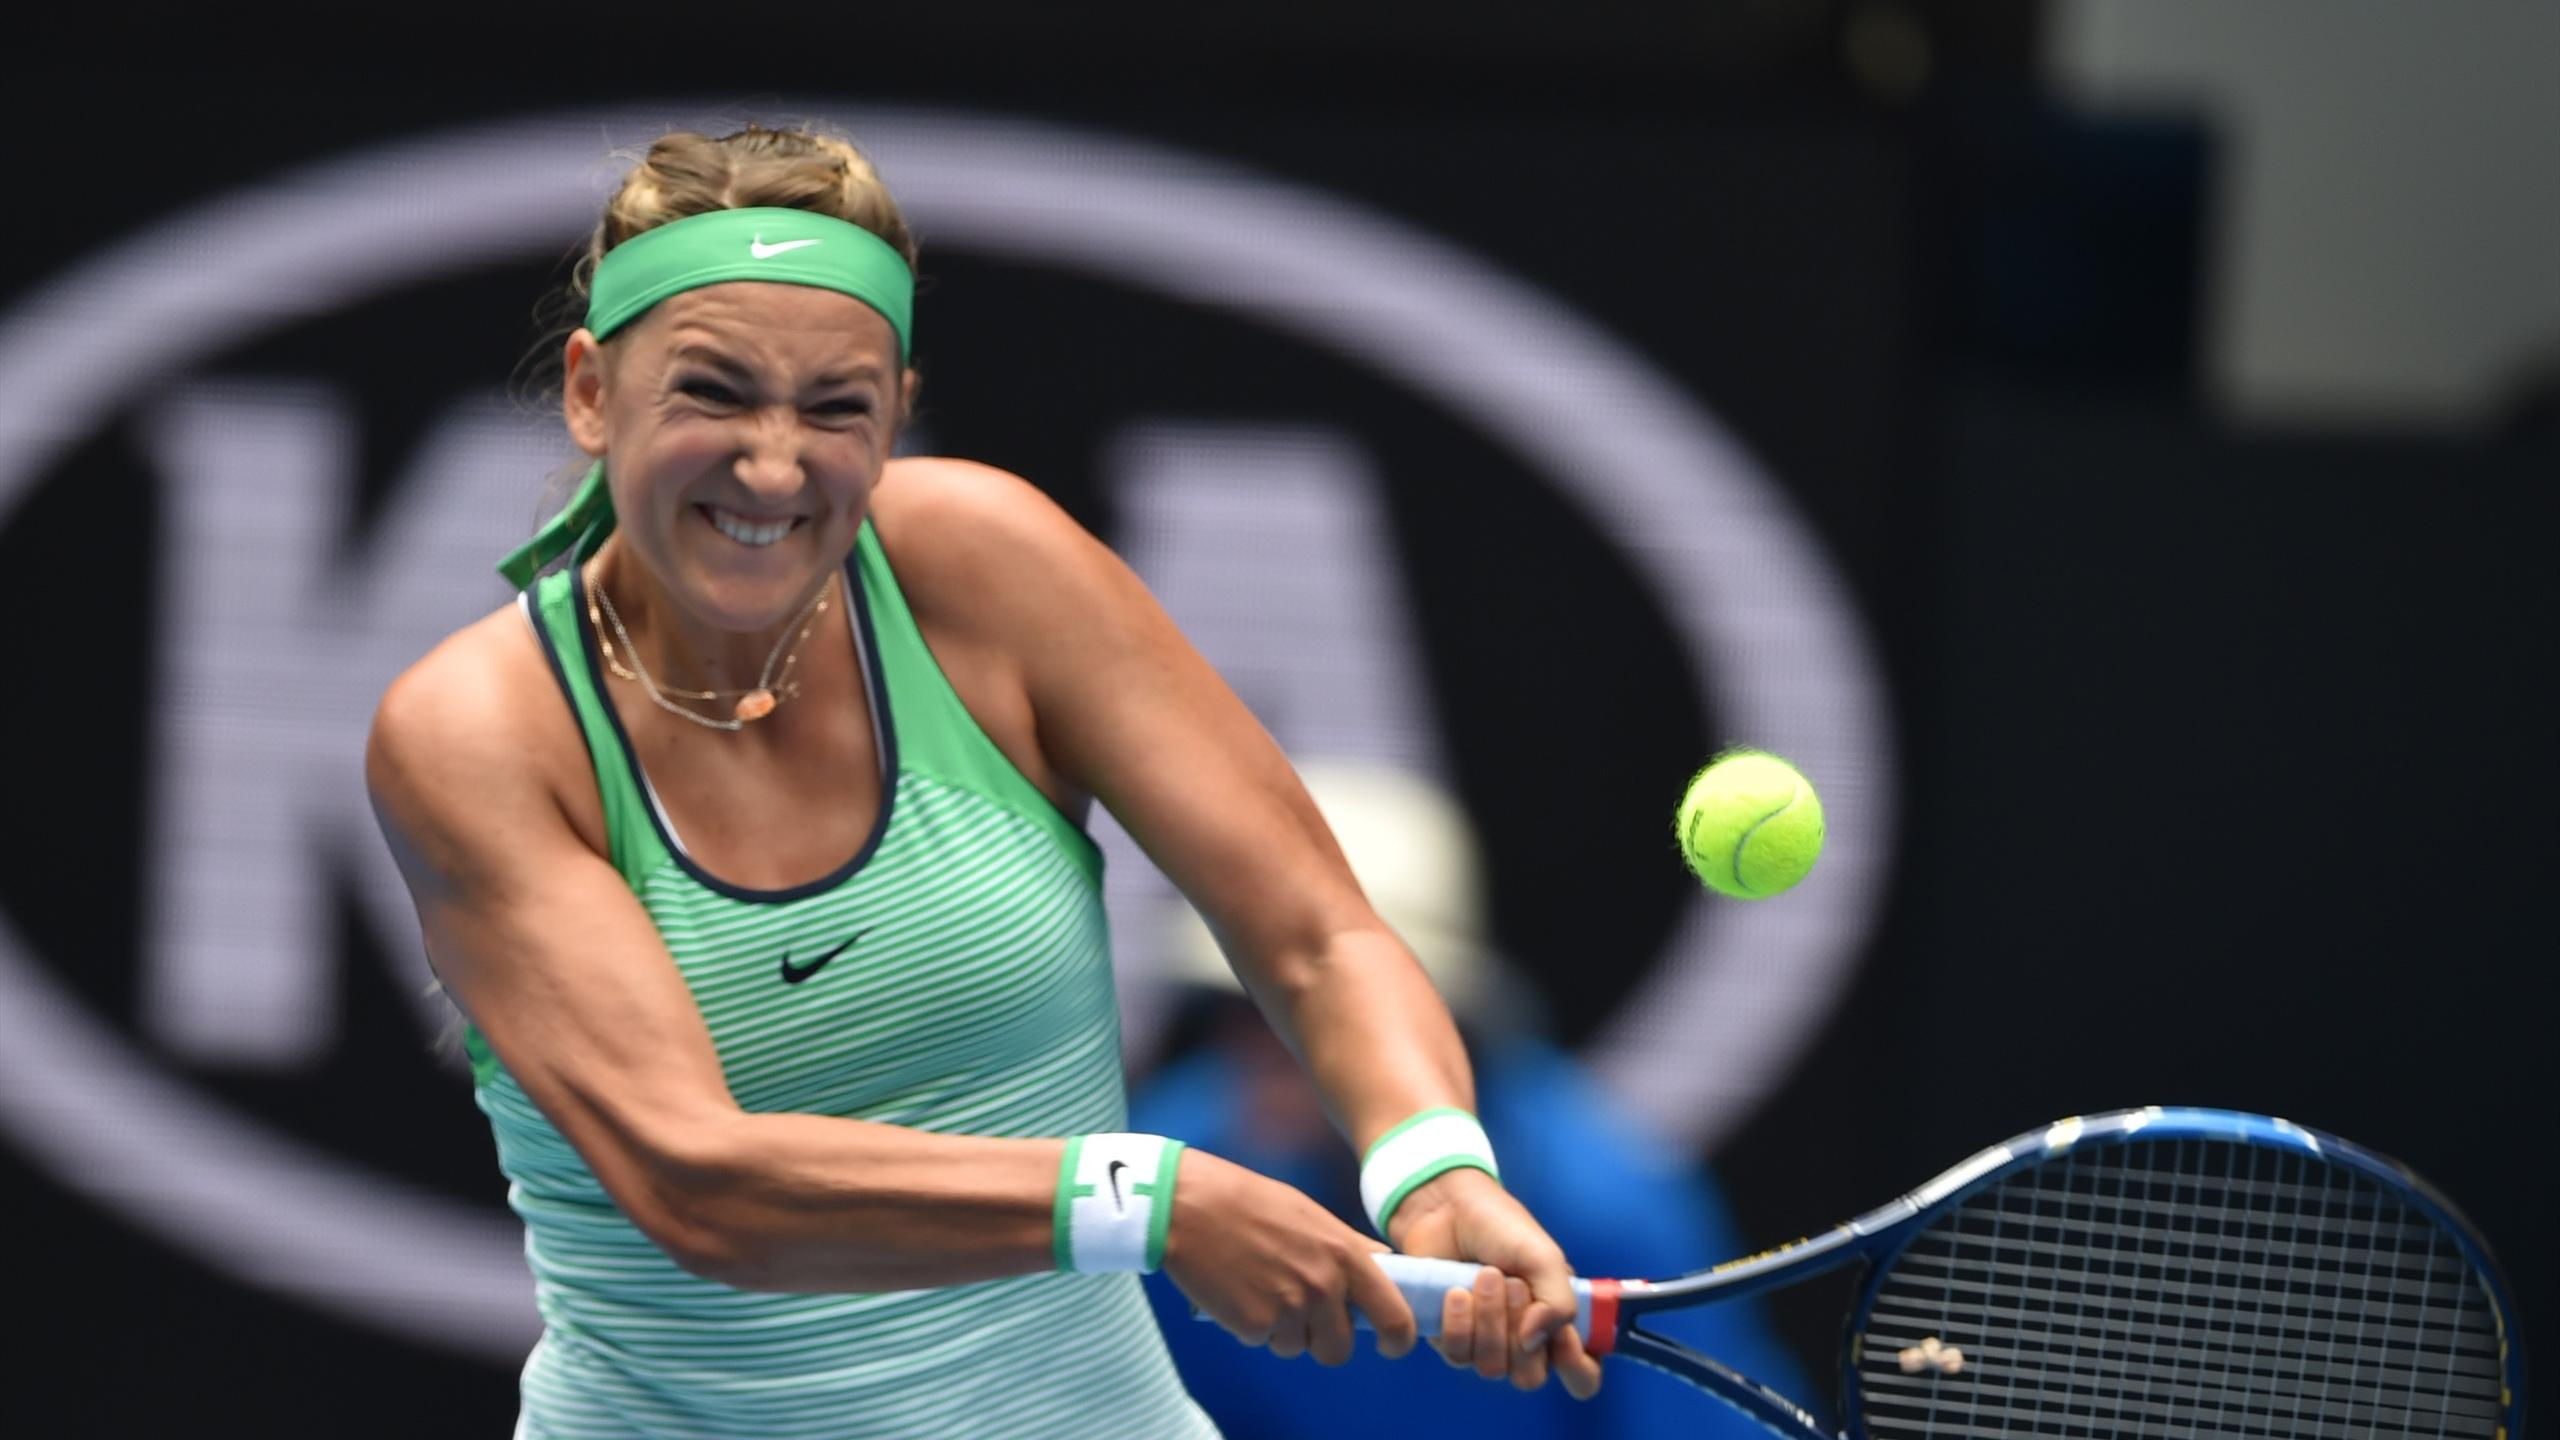 Belarus's Victoria Azarenka plays a backhand return during her women's singles match against Montenegro's Danka Kovinic on day four of the 2016 Australian Open tennis tournament in Melbourne on January 21, 2016.